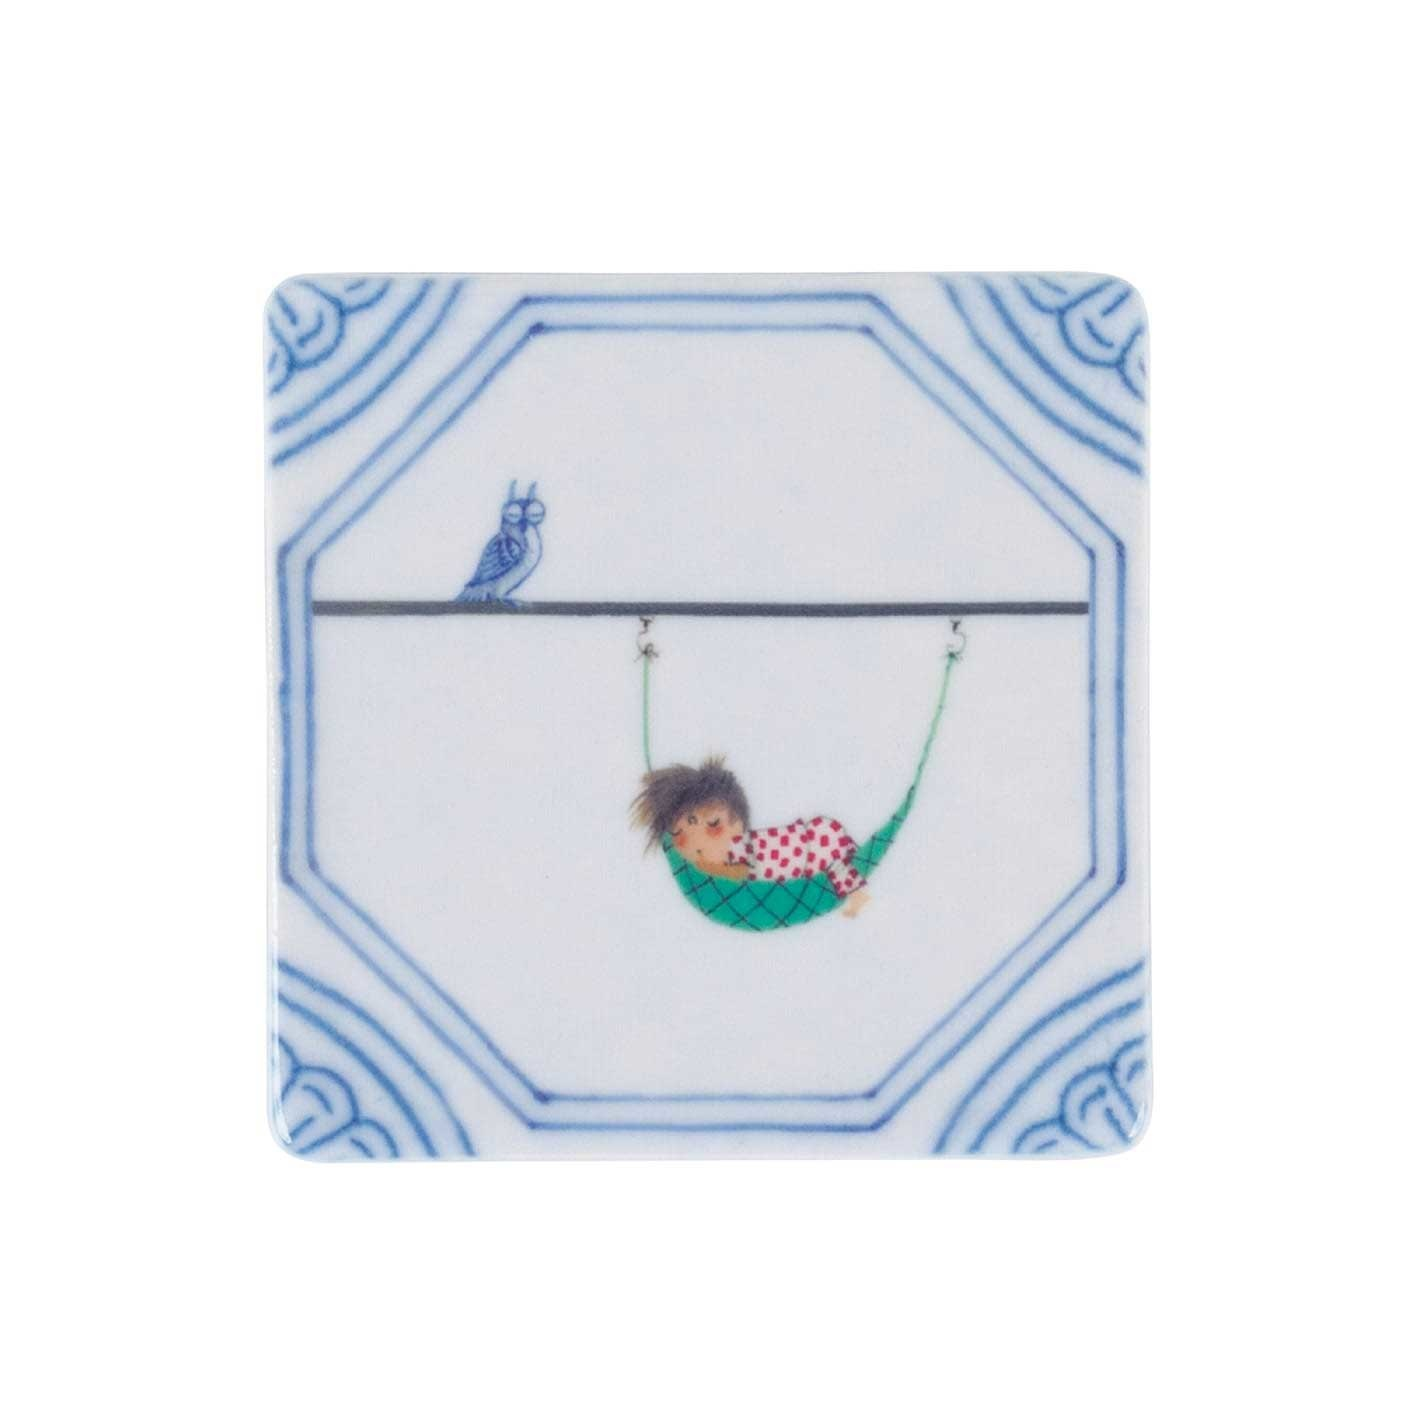 StoryTiles Fiep Westendorp Mini Tile 'A lazy afternoon' - Storytiles